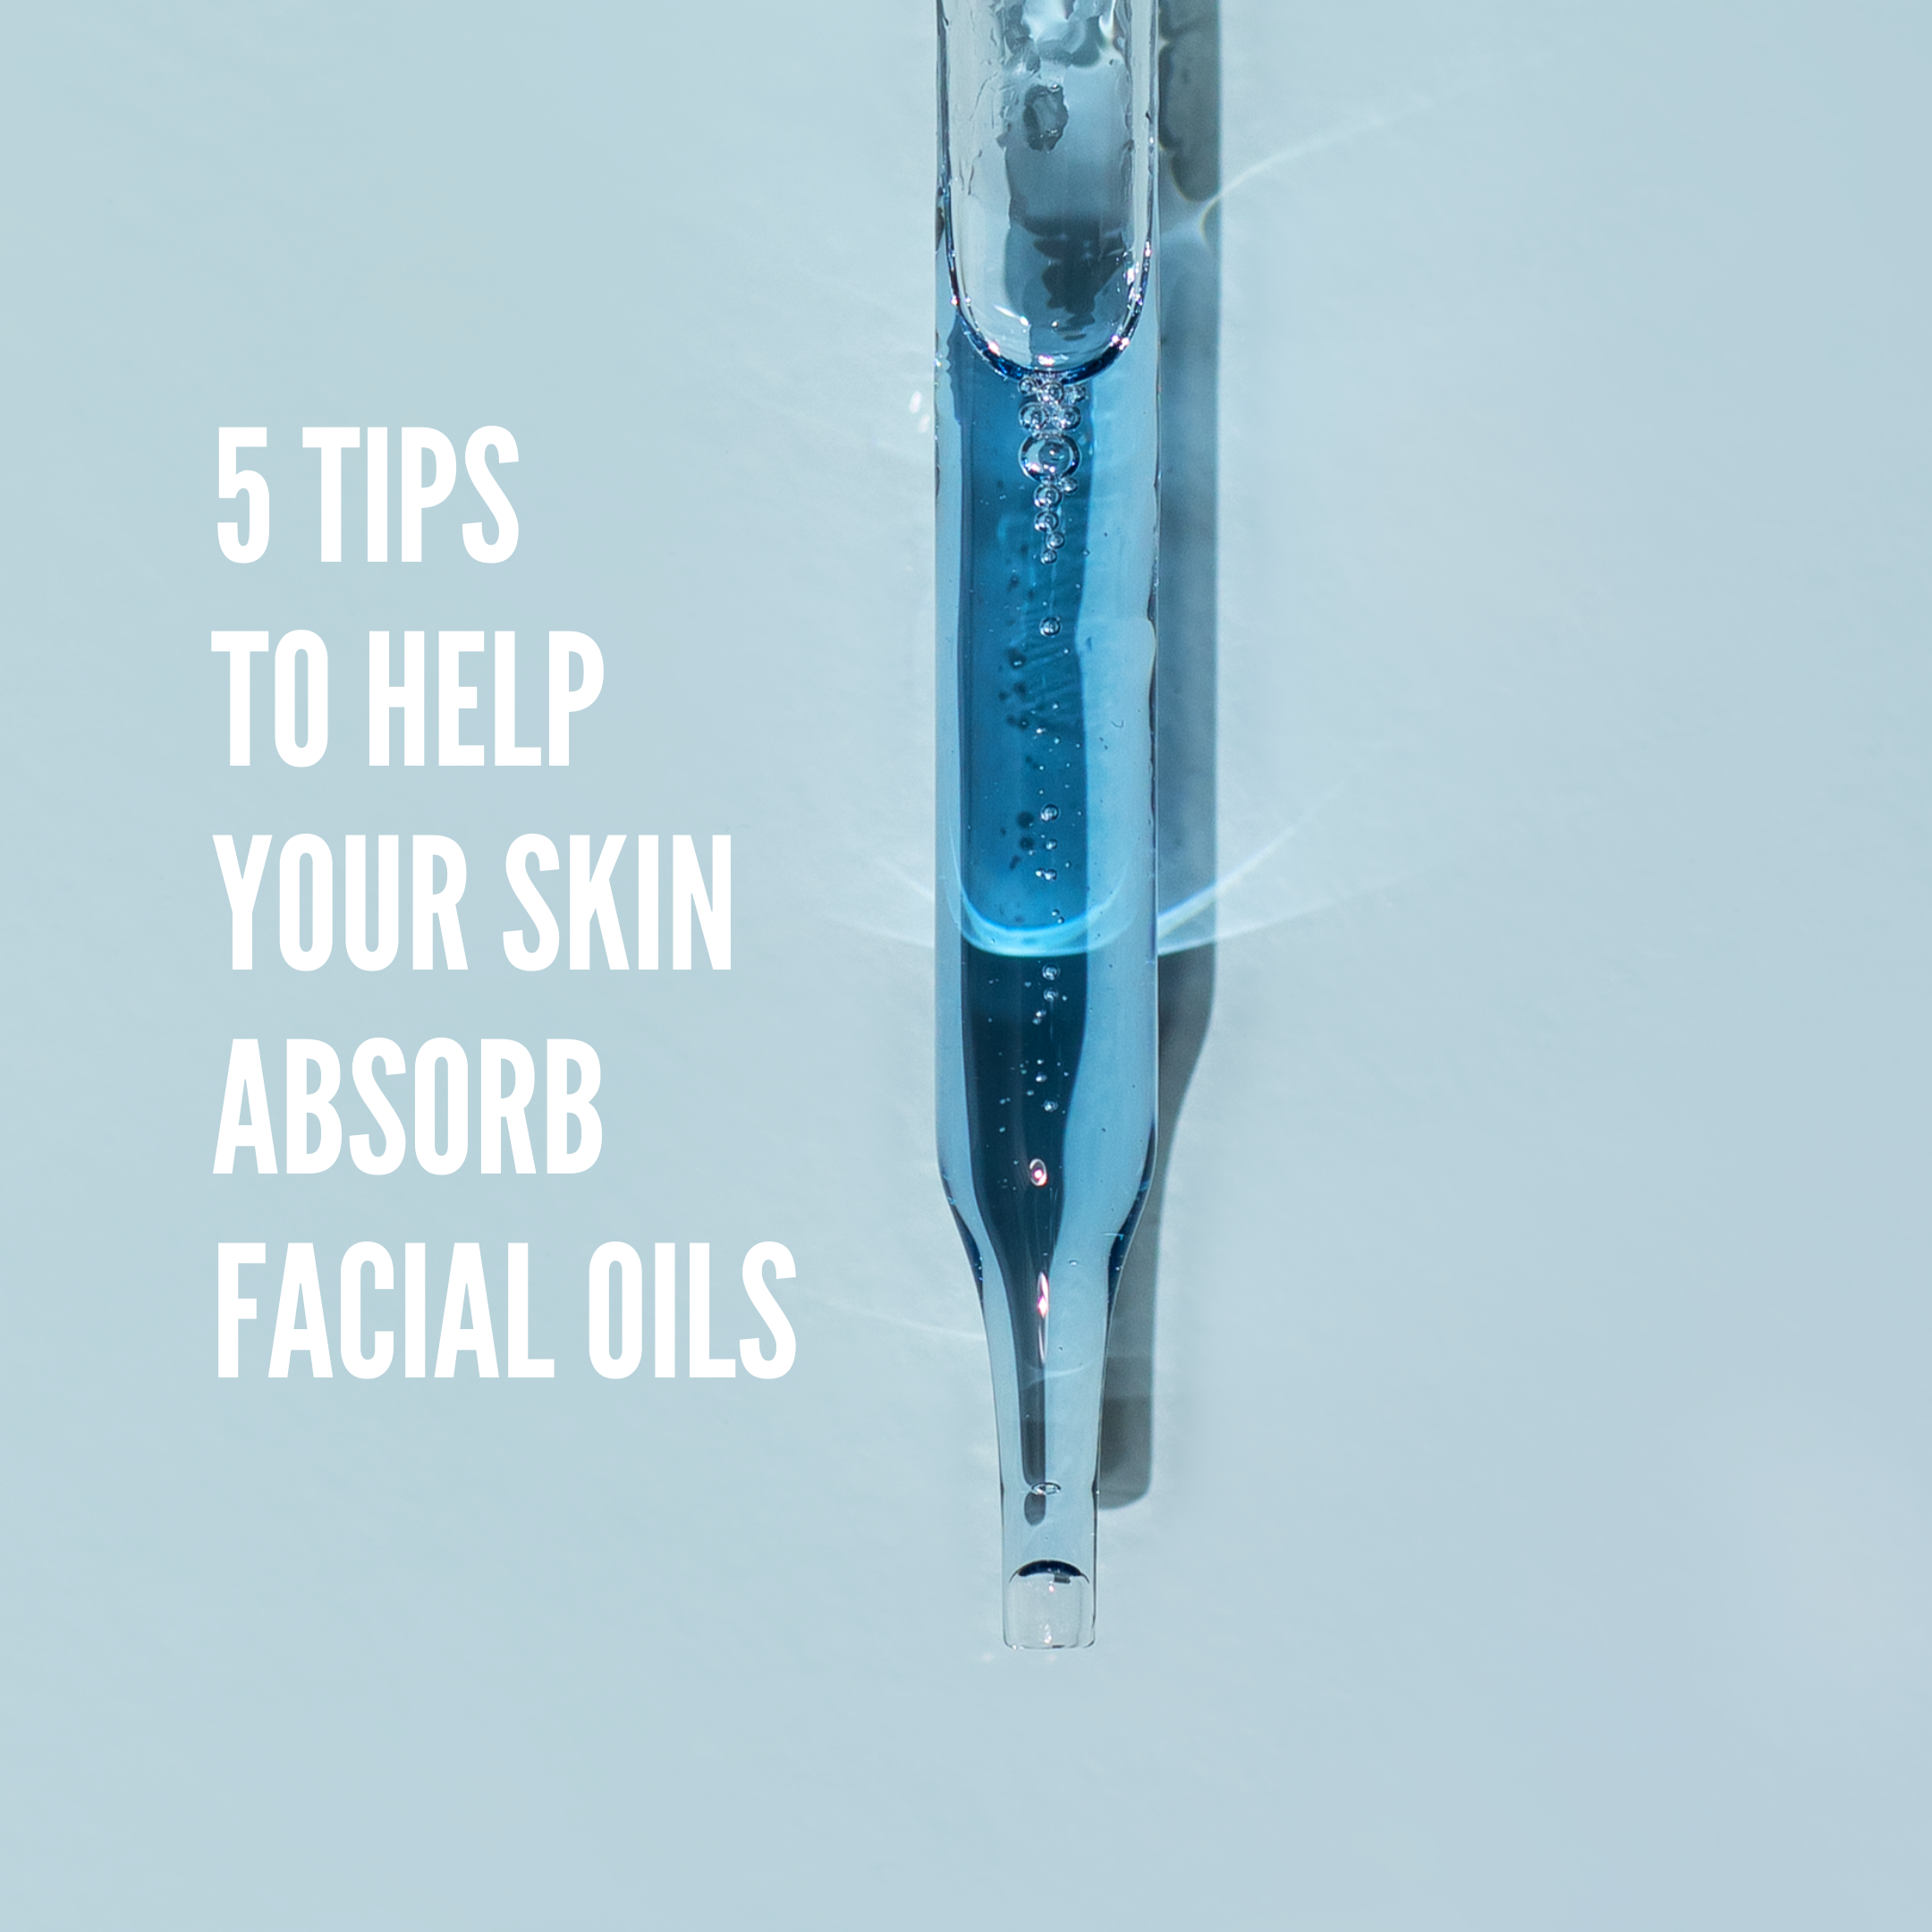 5 Tips to Help Your Skin Absorb Face Oils